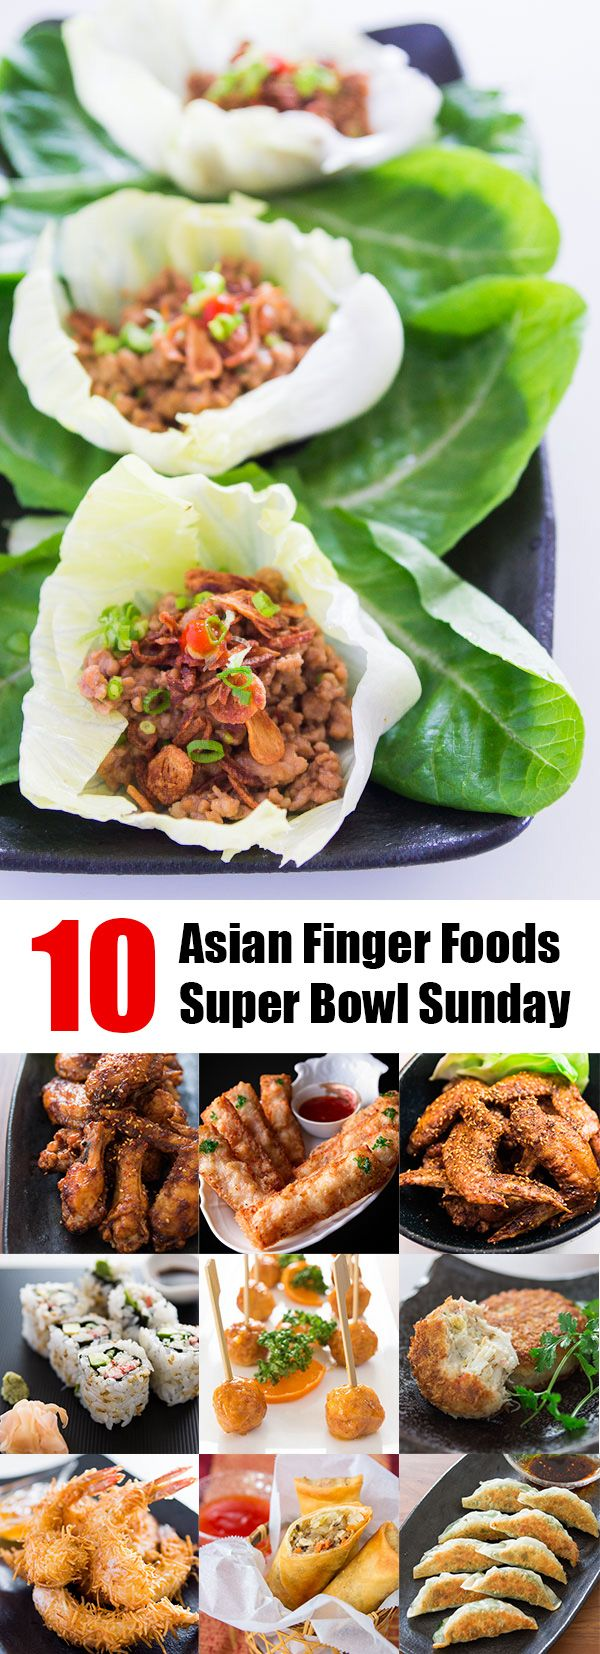 10 Asian finger foods perfect for Super Bowl Sunday. @norecipes